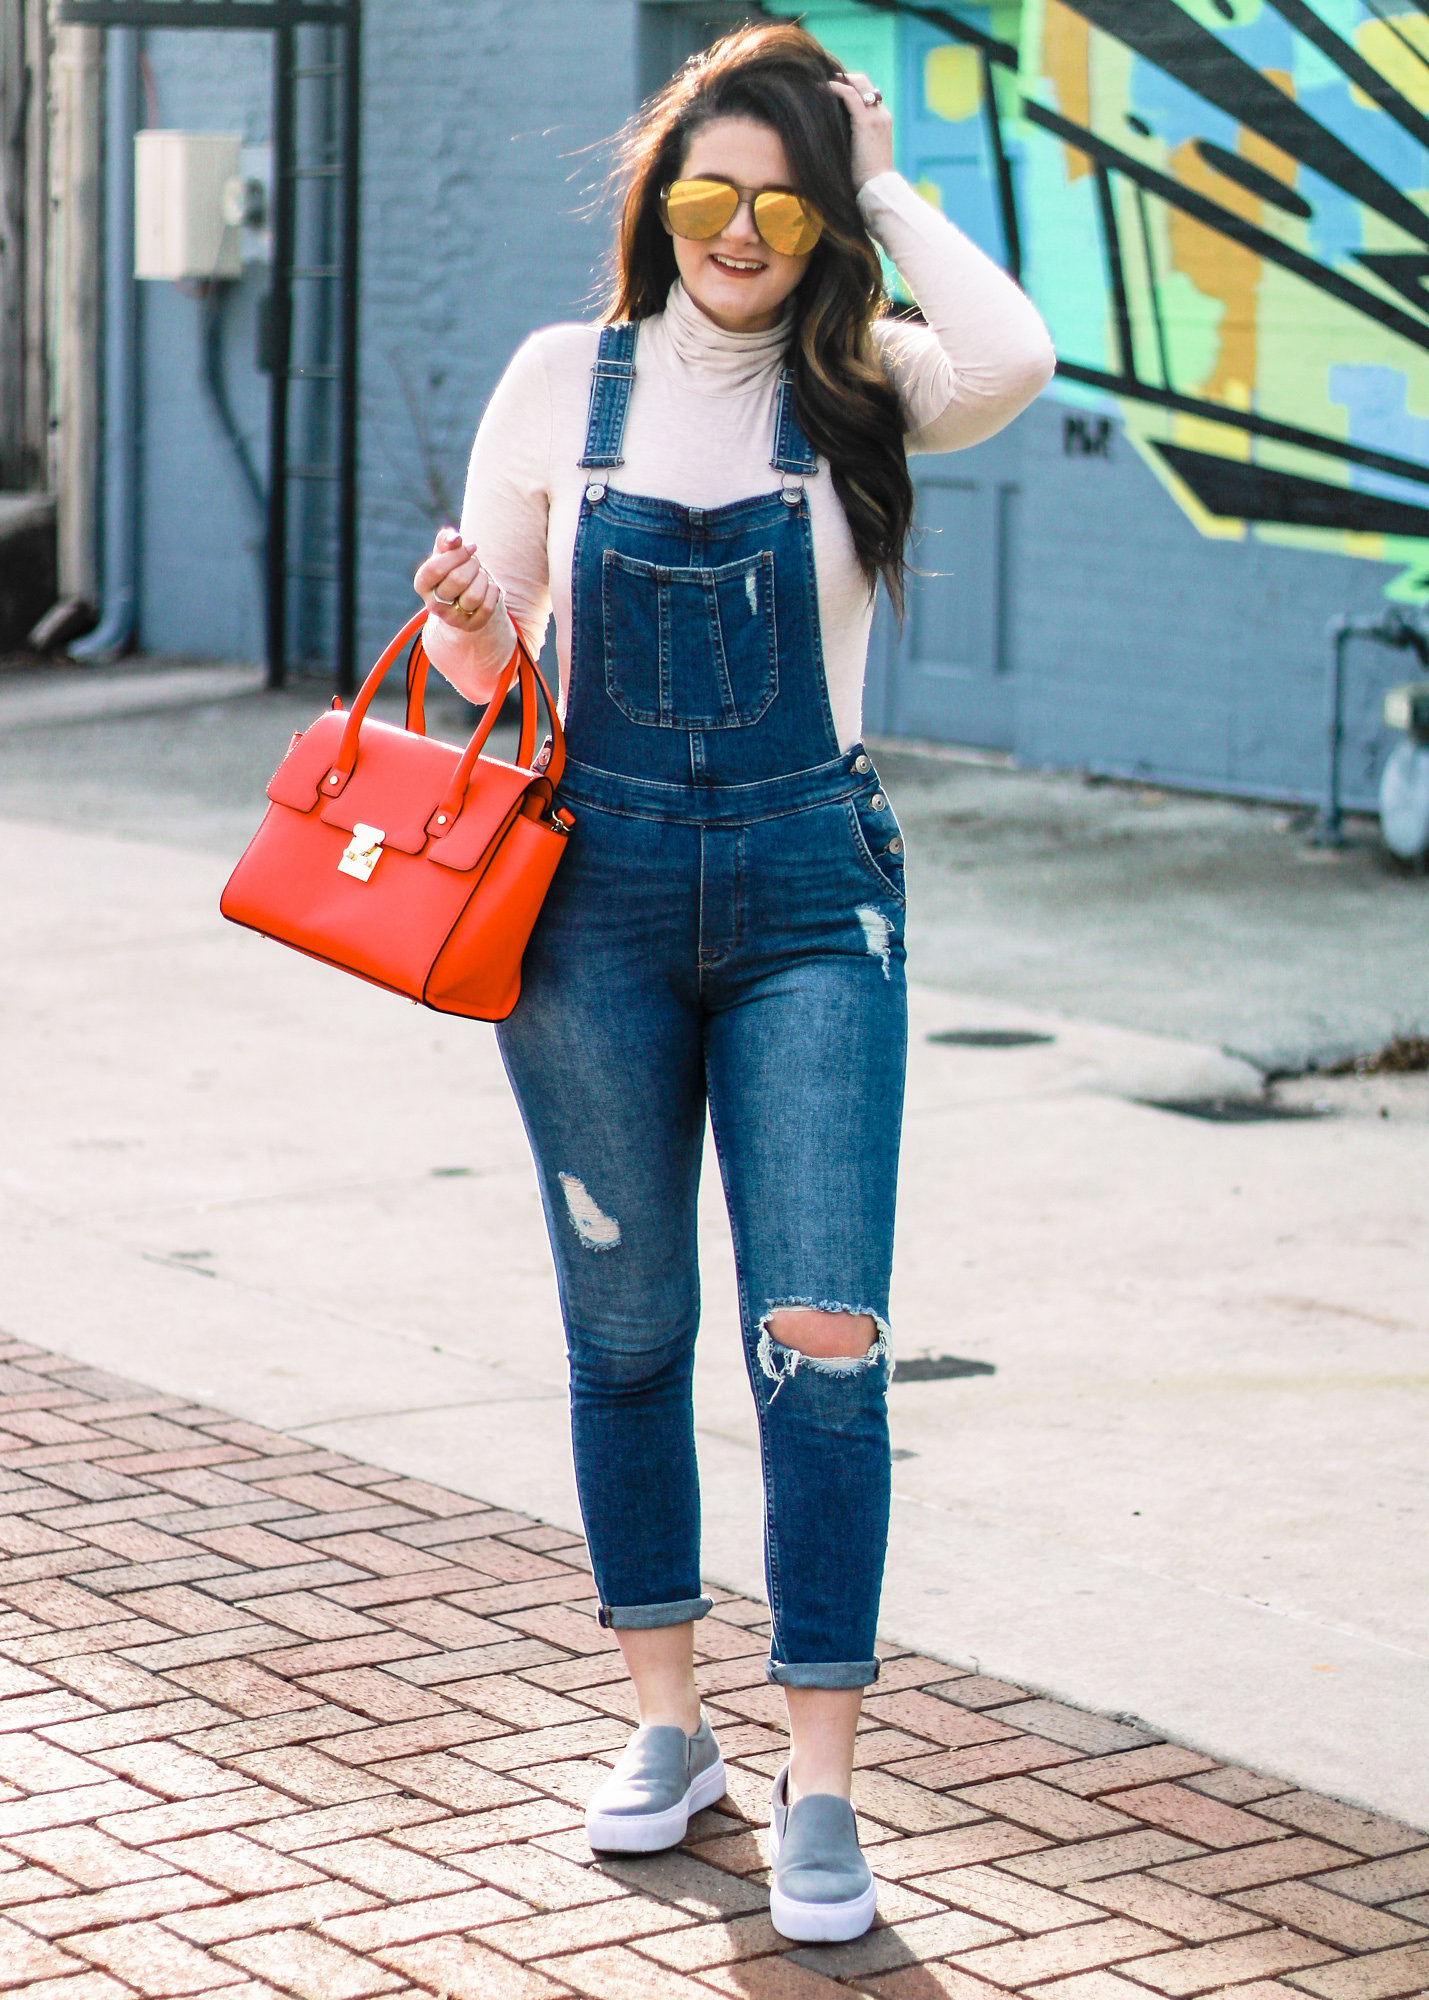 Why You Need Overalls in Your Wardrobe This Season